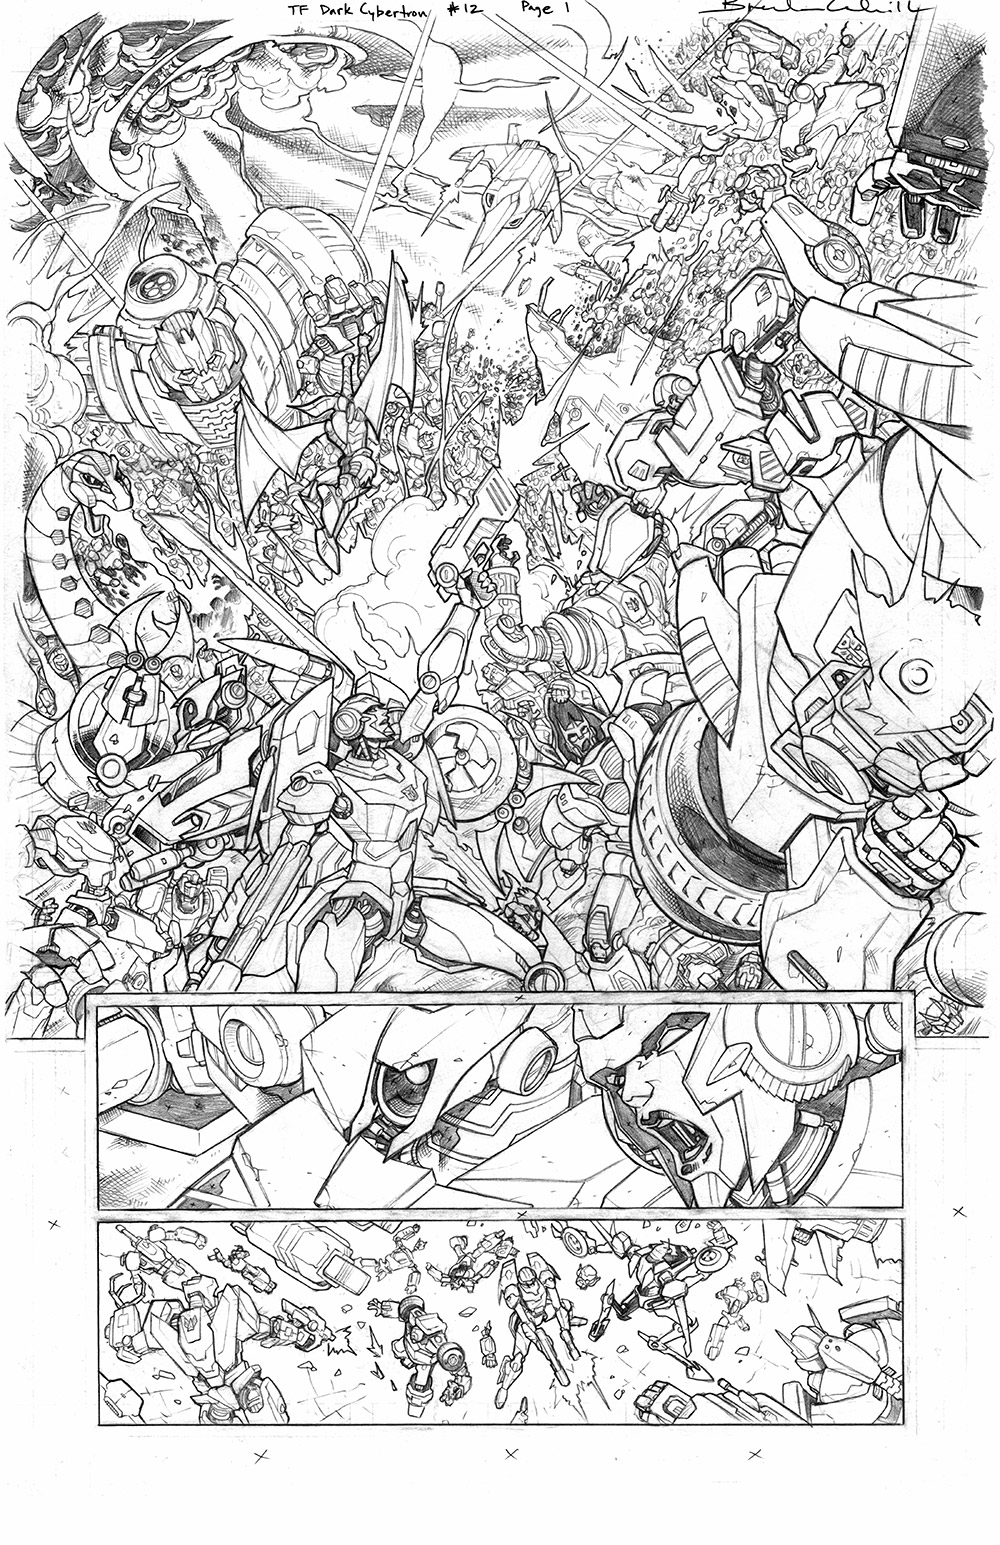 Transformers: Dark Cybertron #12, Page 1